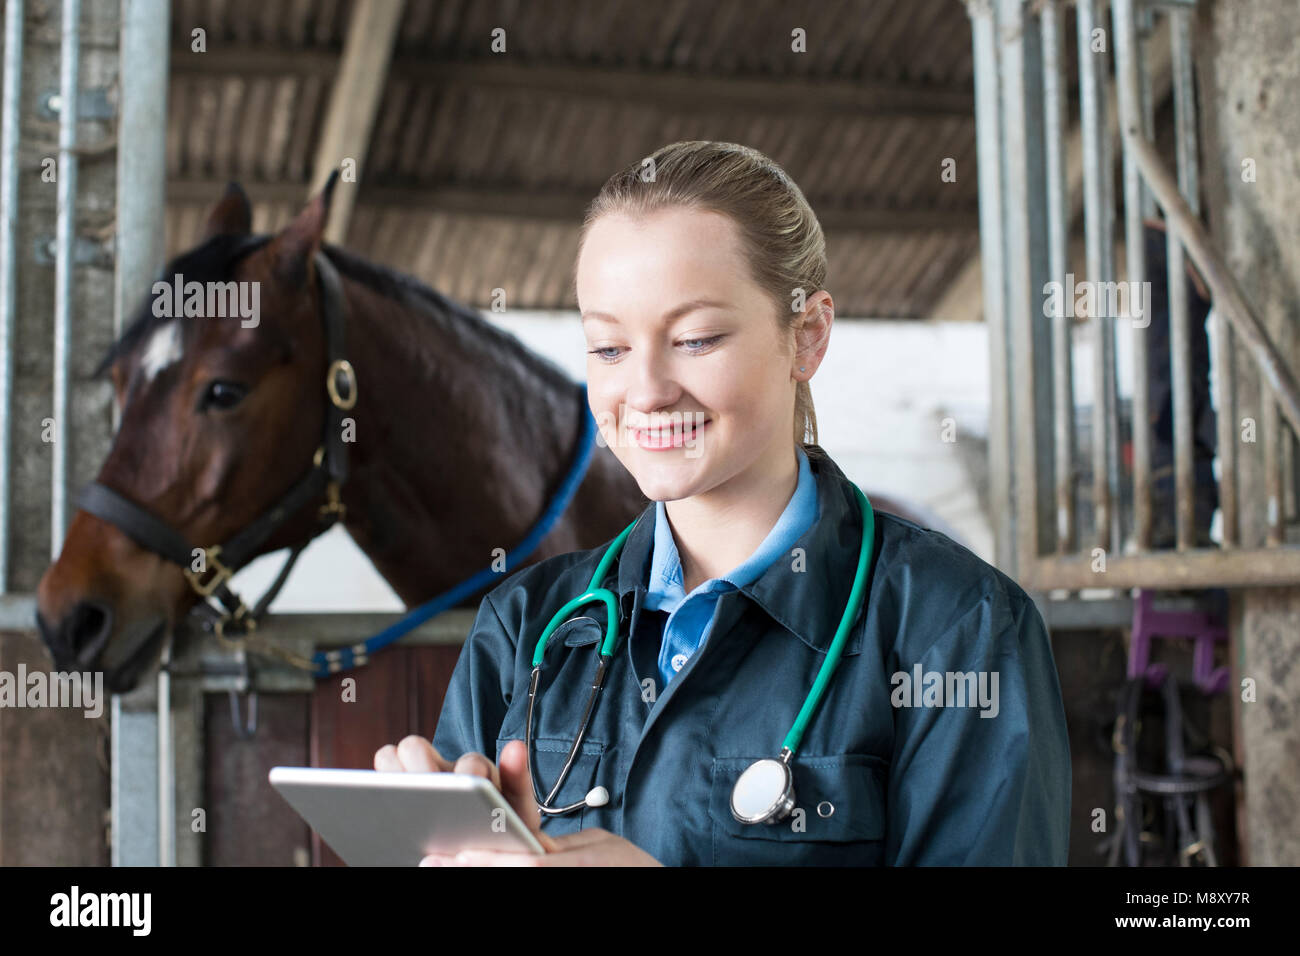 Female Vet With Digital Tablet Examining Horse In Stable - Stock Image